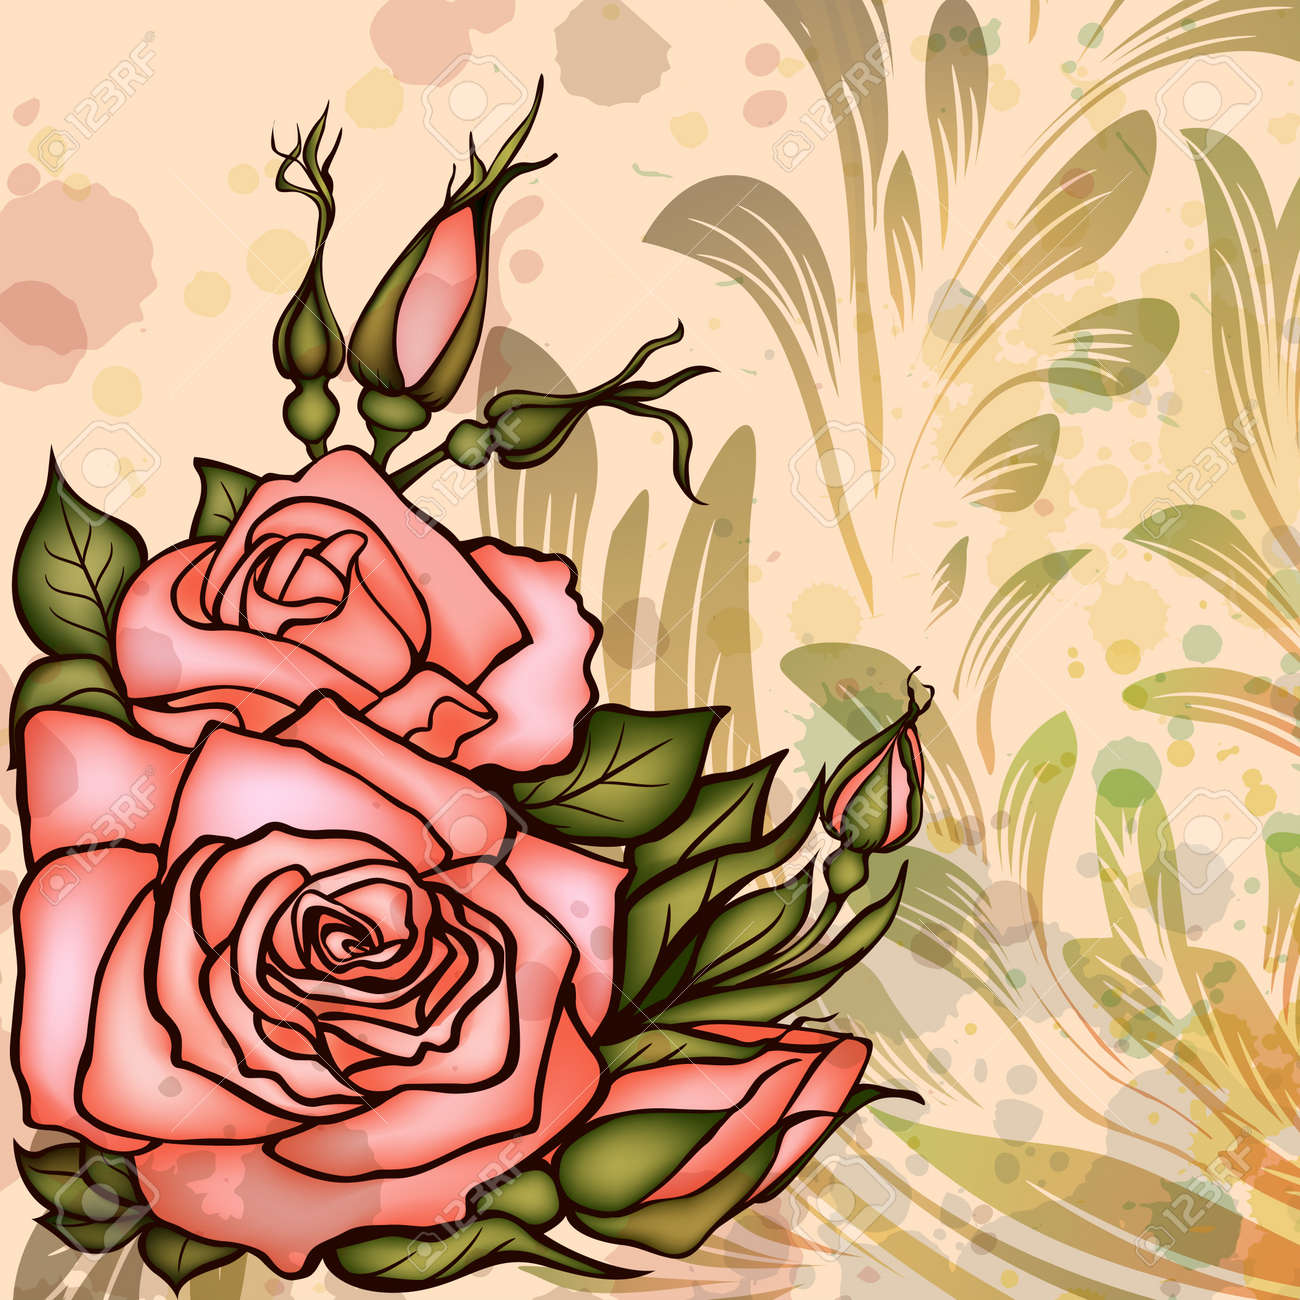 Grungy background with roses Stock Vector - 14254775